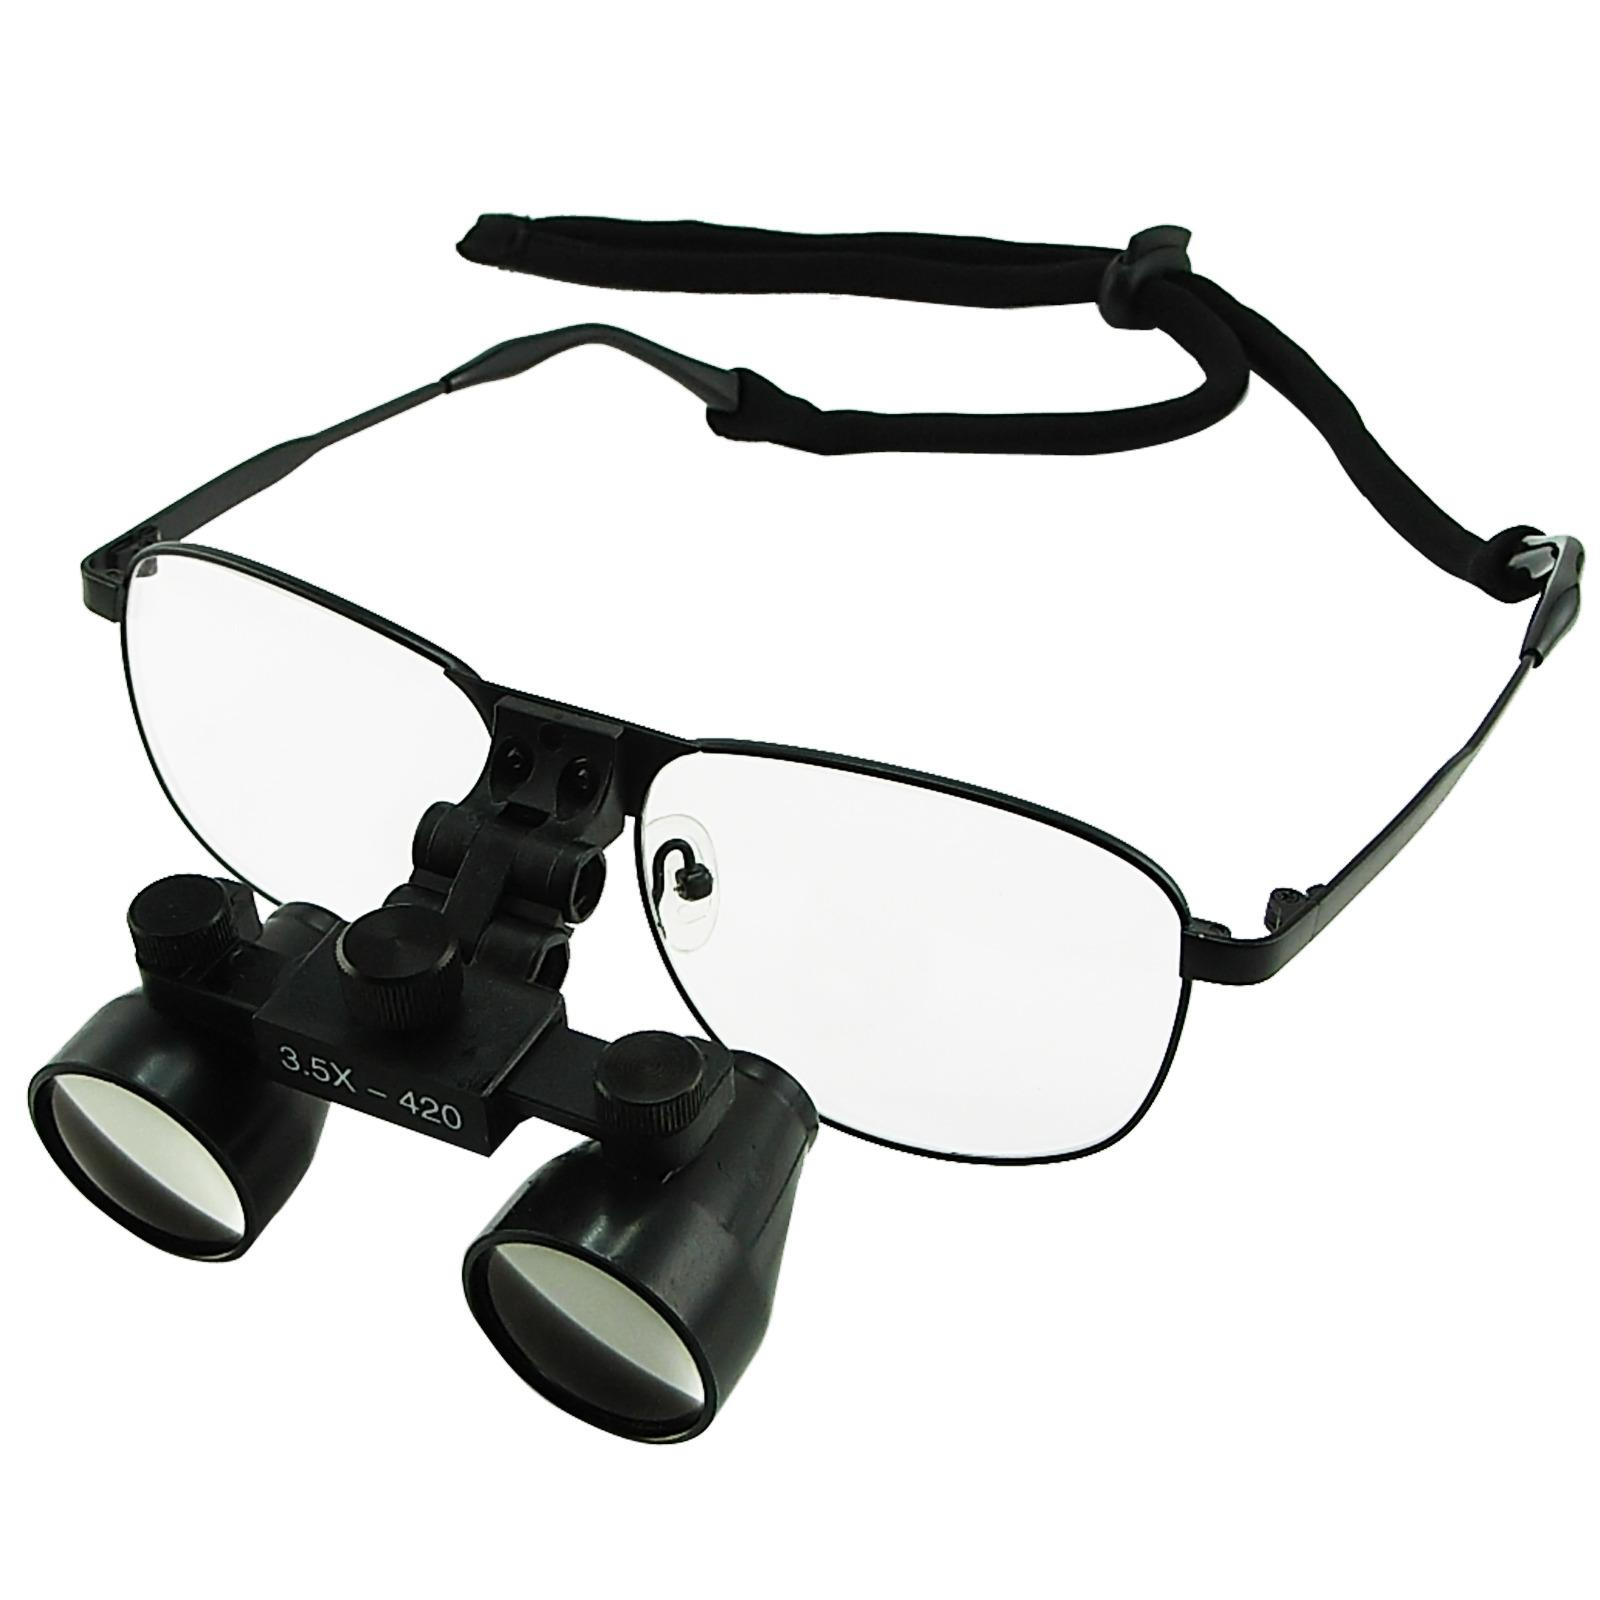 Sale Dl 035 Gain Express 3 5X Magnification Dental Loupes Galilean Style Titanium Frame Dental Surgical Medical Binocular 60Mm Field Of View 55Mm Depth Of Field 420Mm Working Distance Flip Up Function Flexible Optical Glass Loupe Dentistry Intl Hong Kong Sar China Cheap